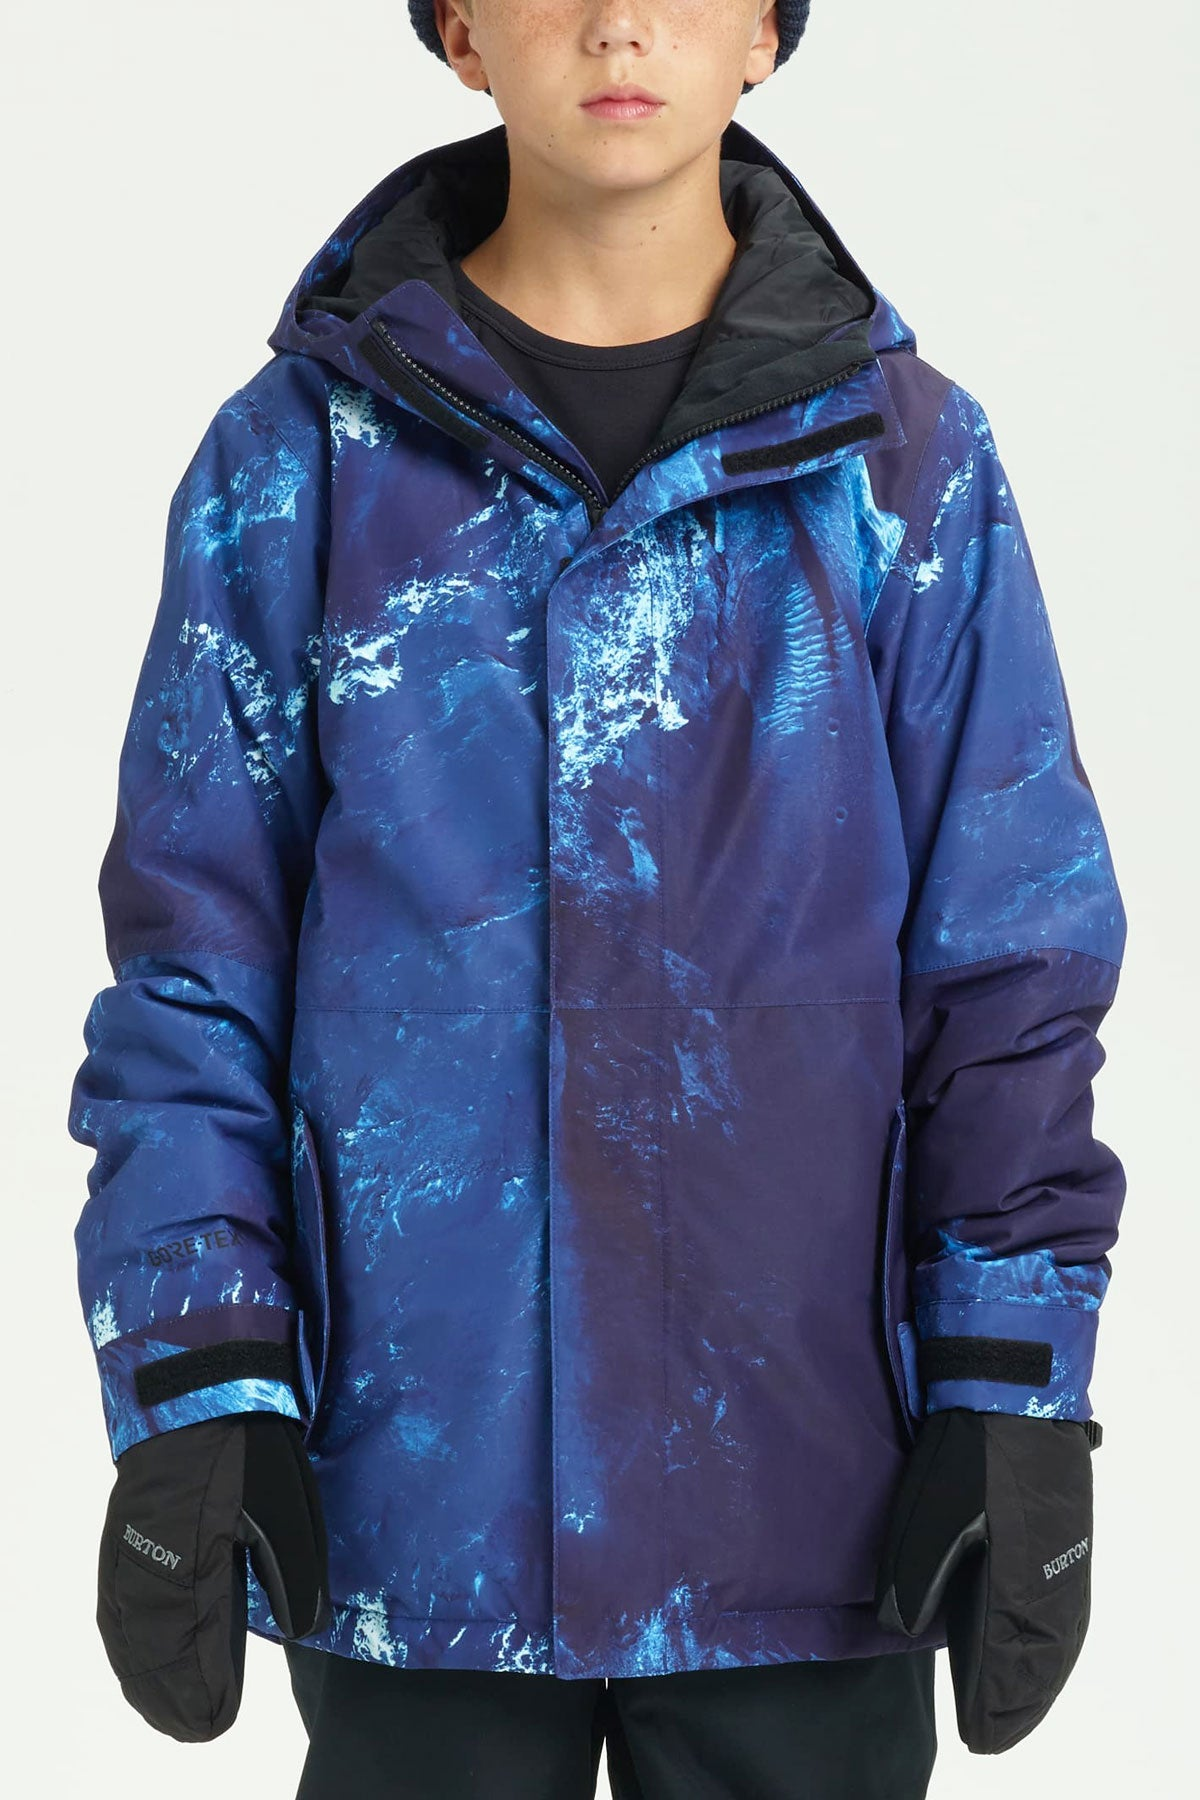 9dad02afe5d1 Burton Youth Gore-Tex Stark Jacket - Blue (Size 8 9 left) - Mini Ruby